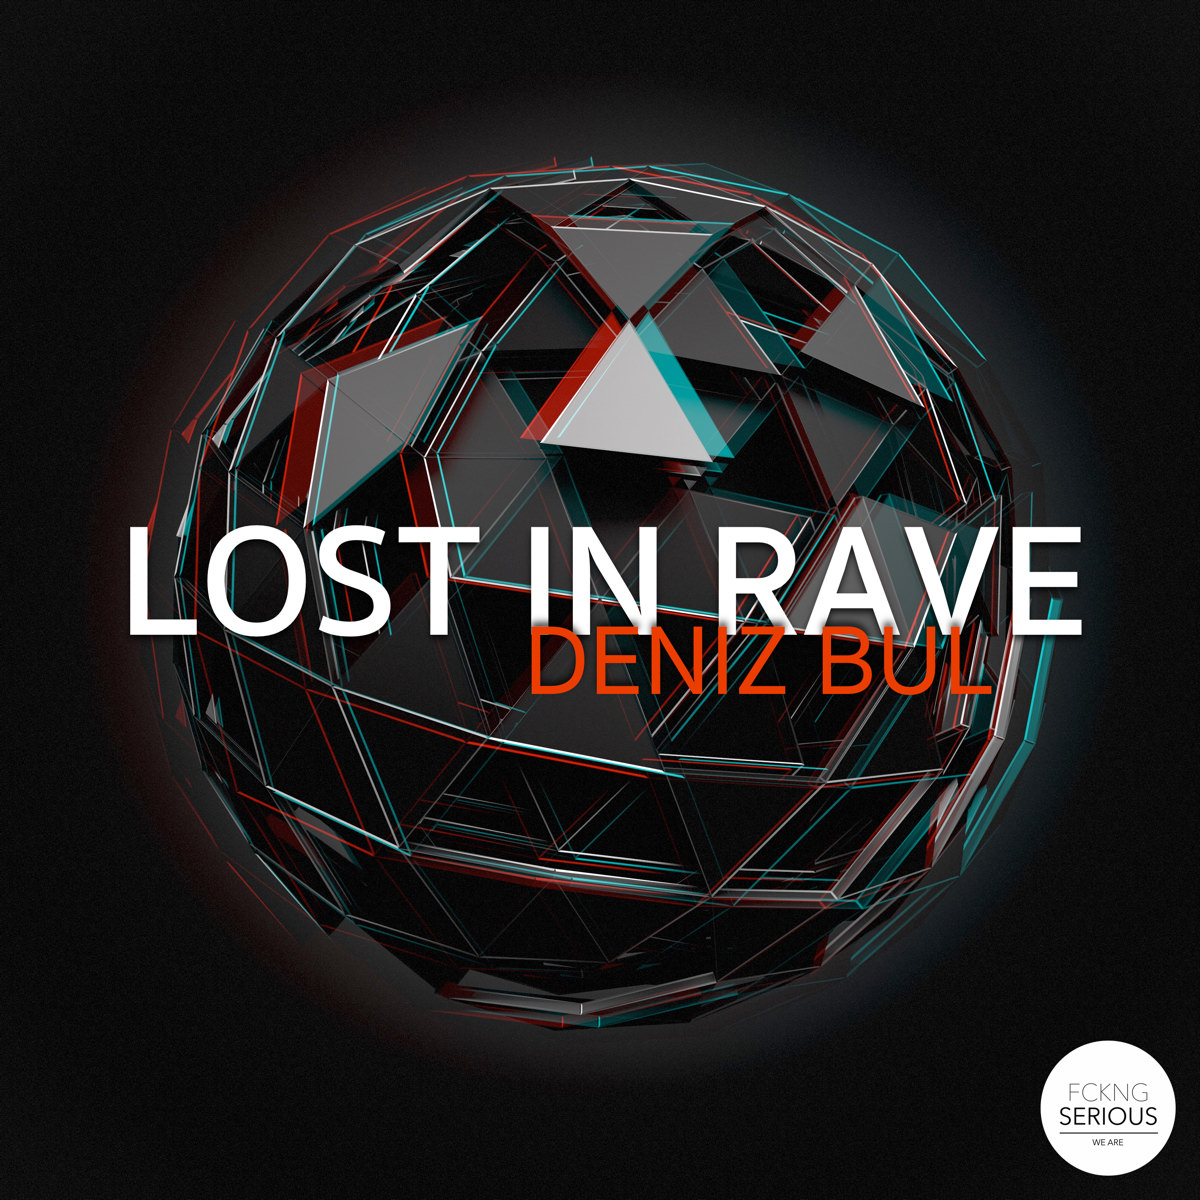 LOST IN RAVE - DENIZ BULAll good things come in threes. Deniz Bul is back with his third EP called